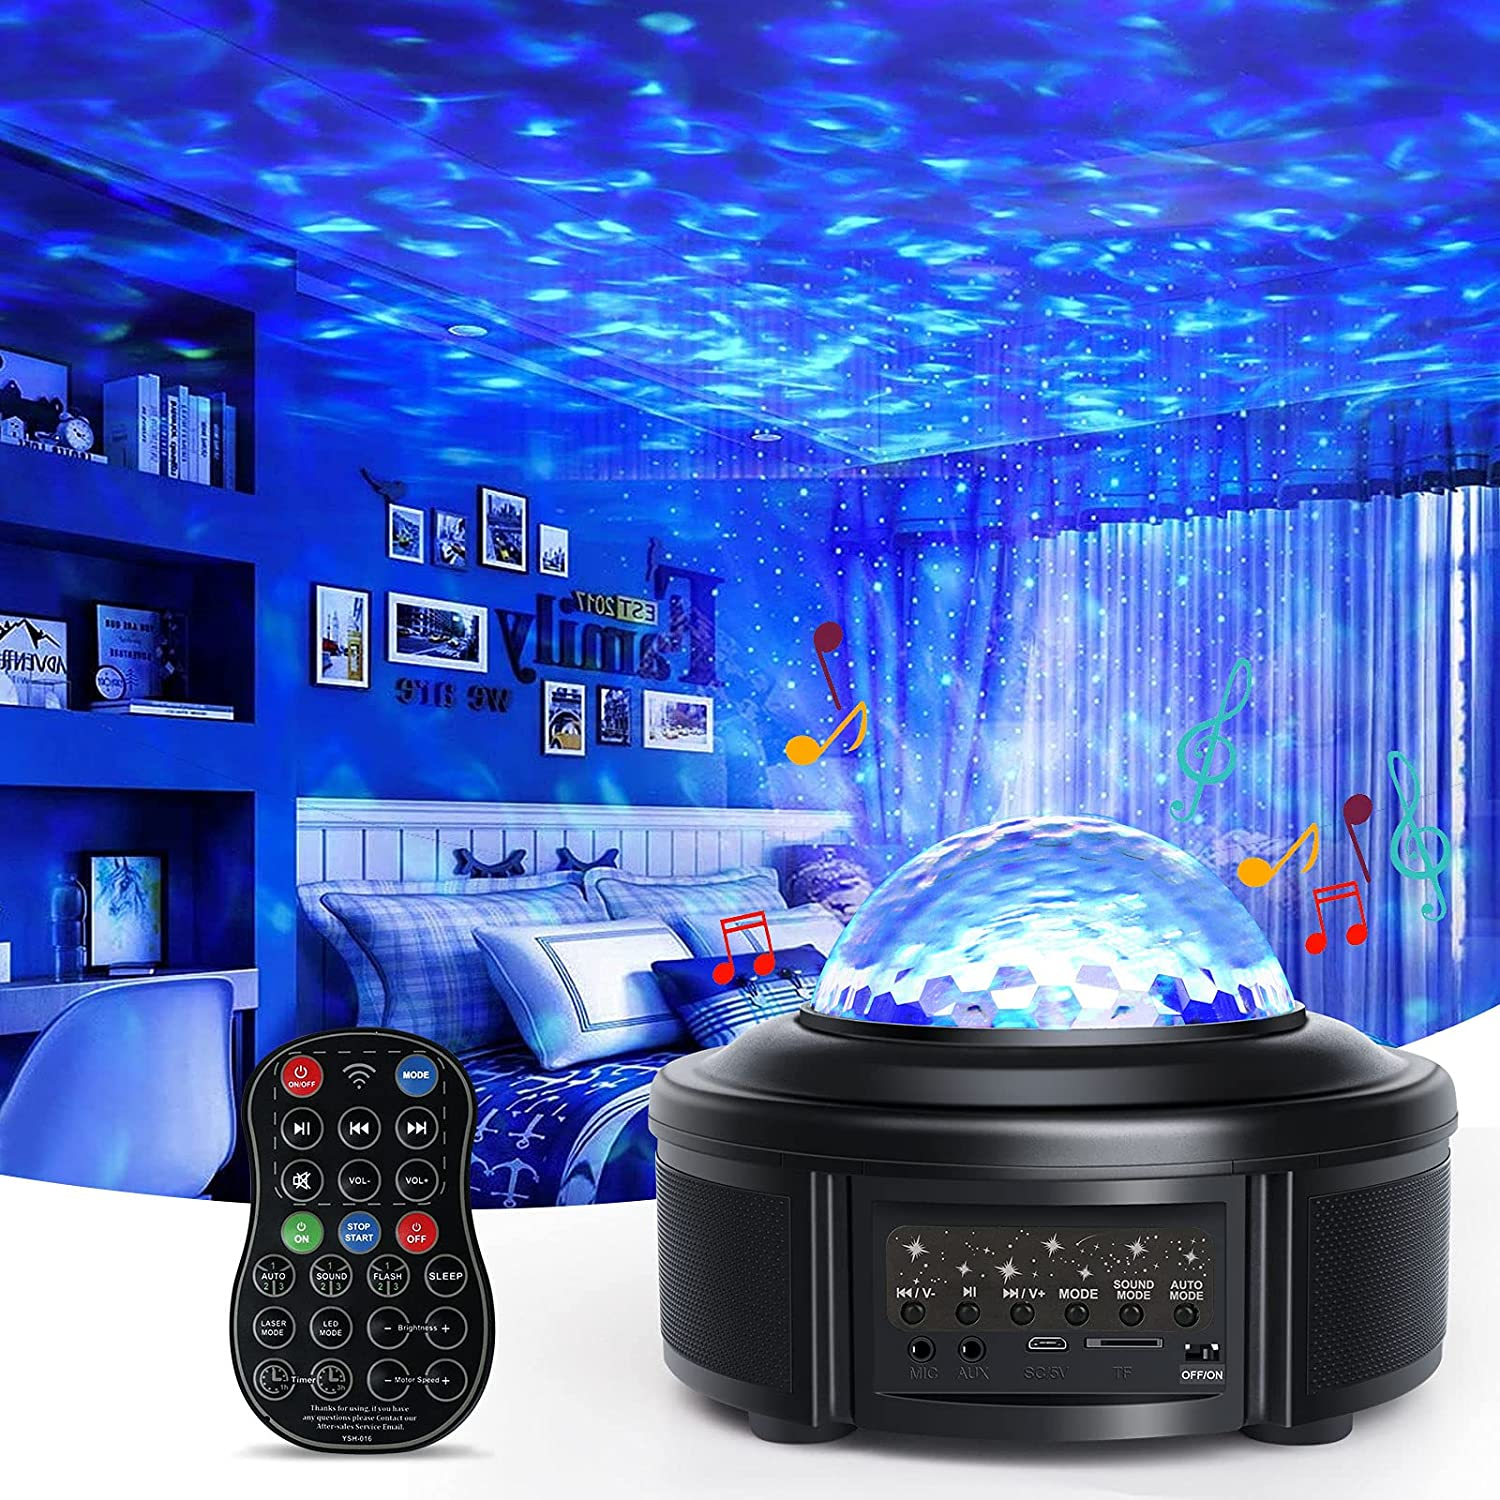 Star Projector, Galaxy Projector with Bluetooth Music Speaker, Remote Control & Timing Night Light Projector for Kids Baby Starry Sky Light for Bedroom/Party/Home/Room Decor